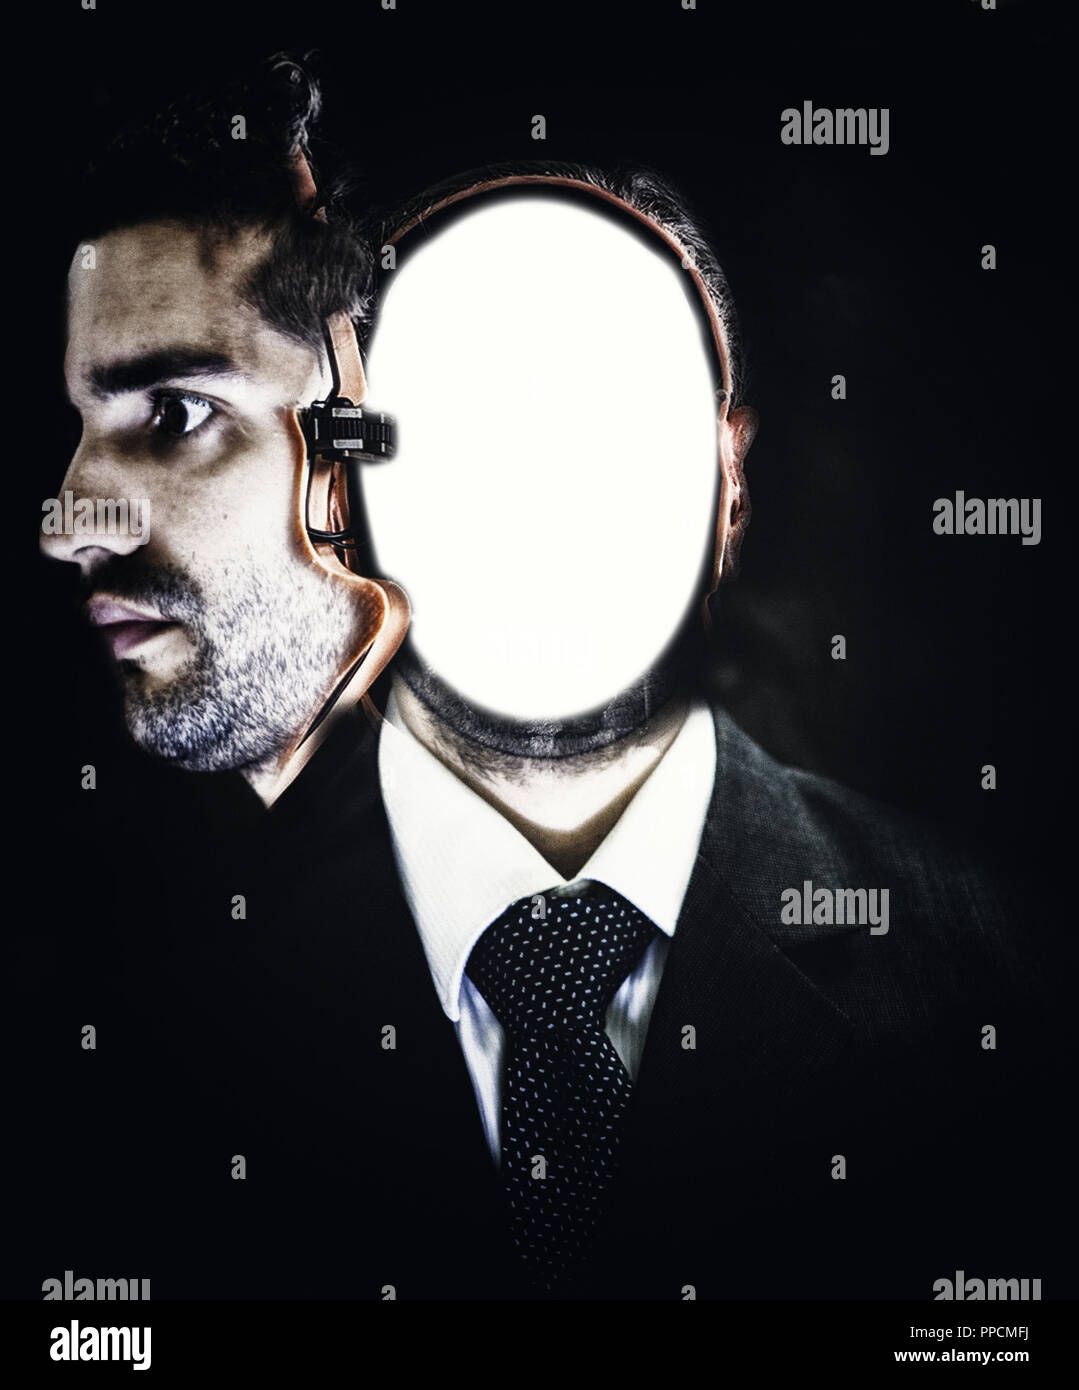 cyborg face with internal blank board - Stock Image